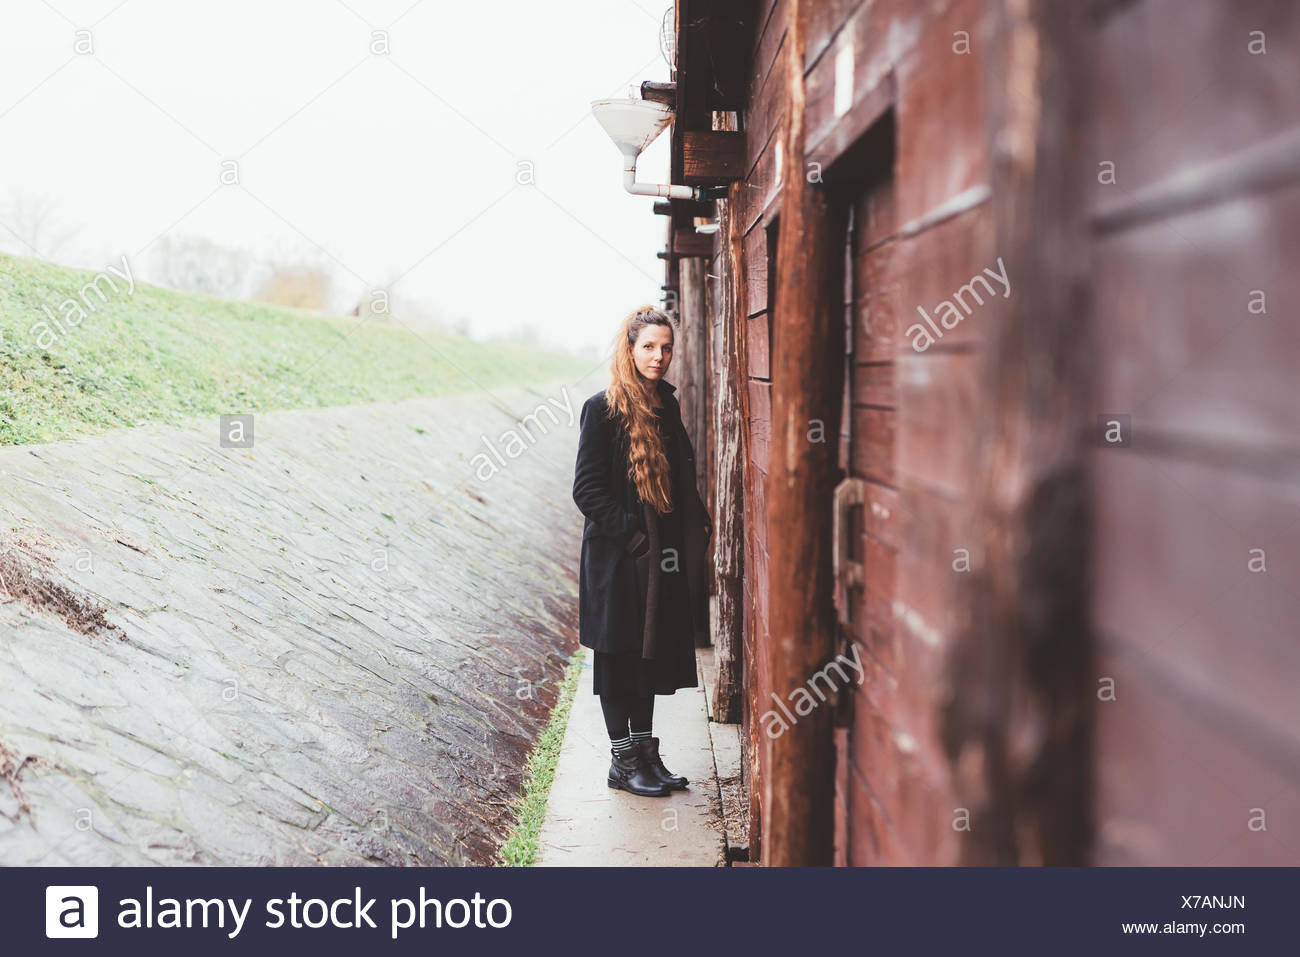 Portrait of young woman by weathered hut - Stock Image